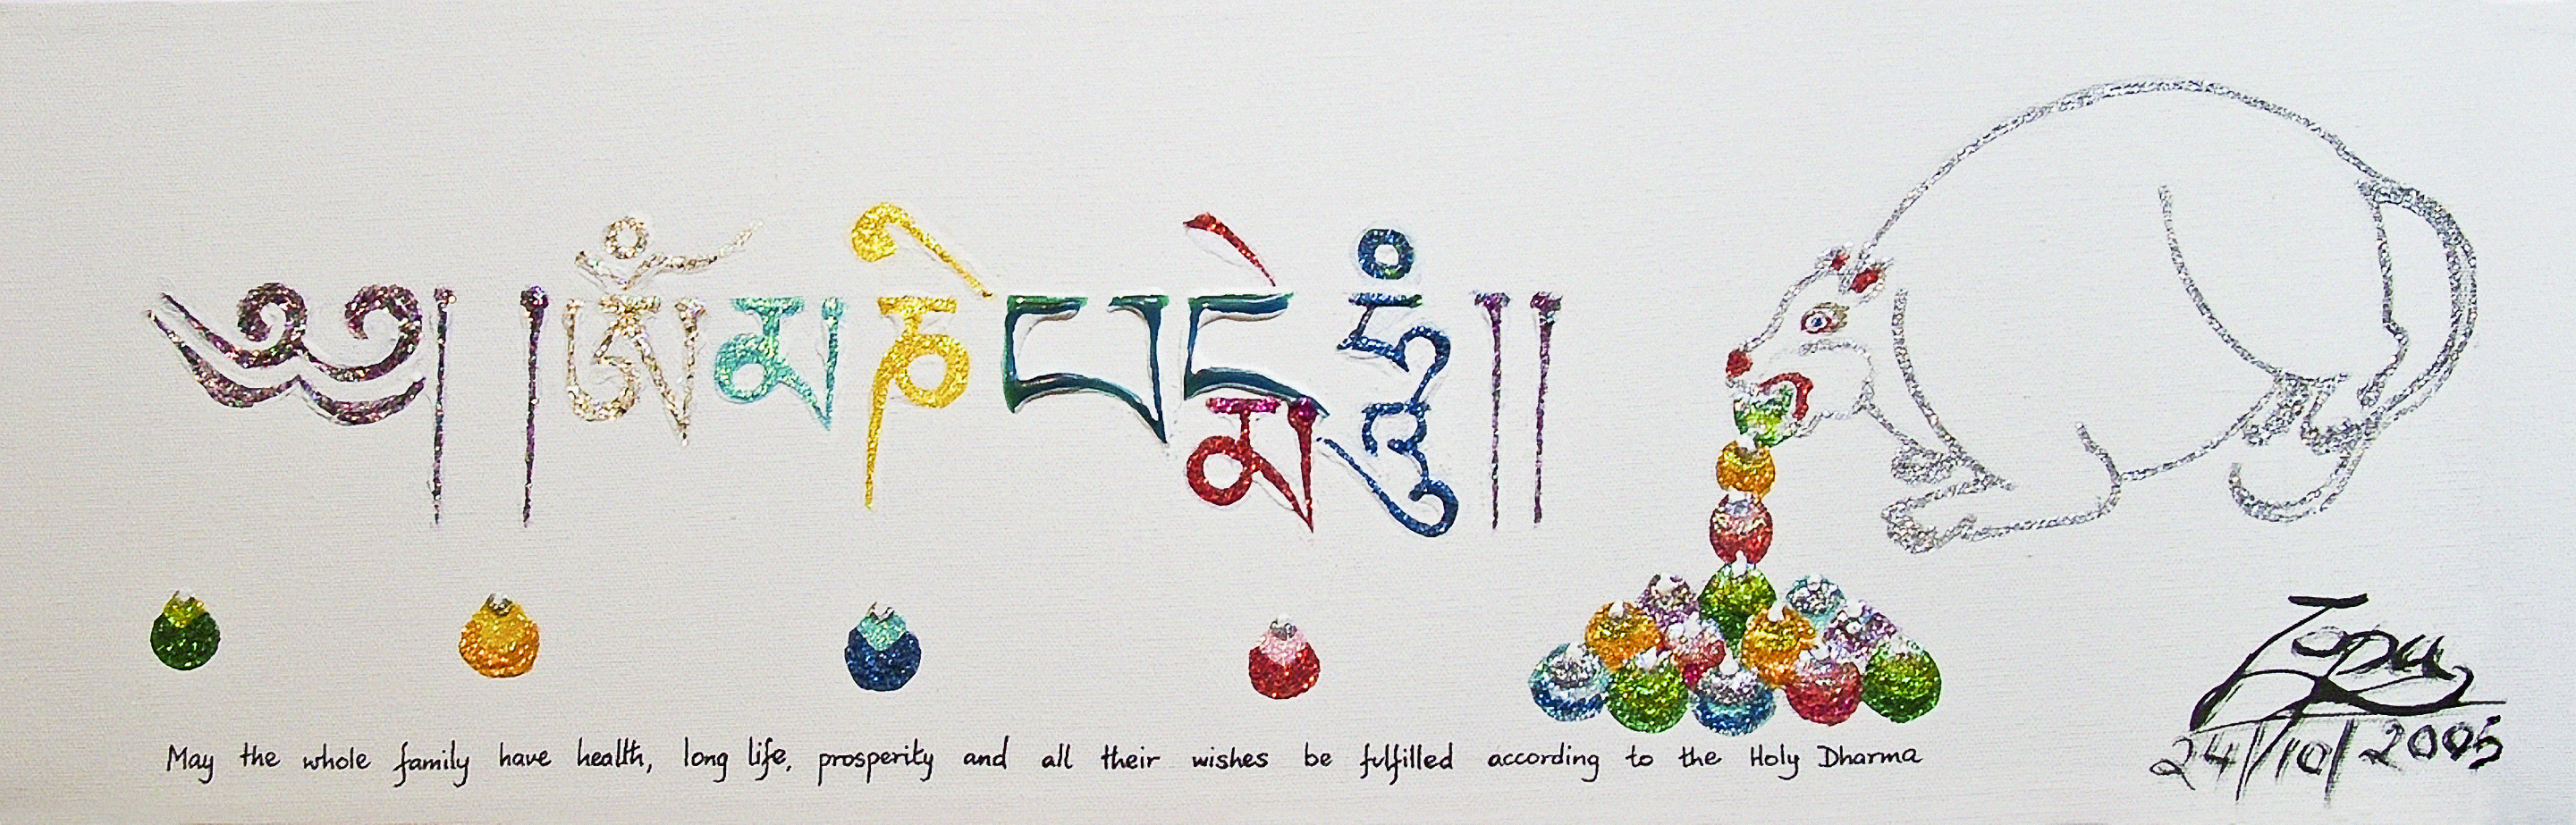 OM MANI PADME HUMmantra with mongoose gushingwish-granting jewels. (Art by Lama Zopa Rinpoche)